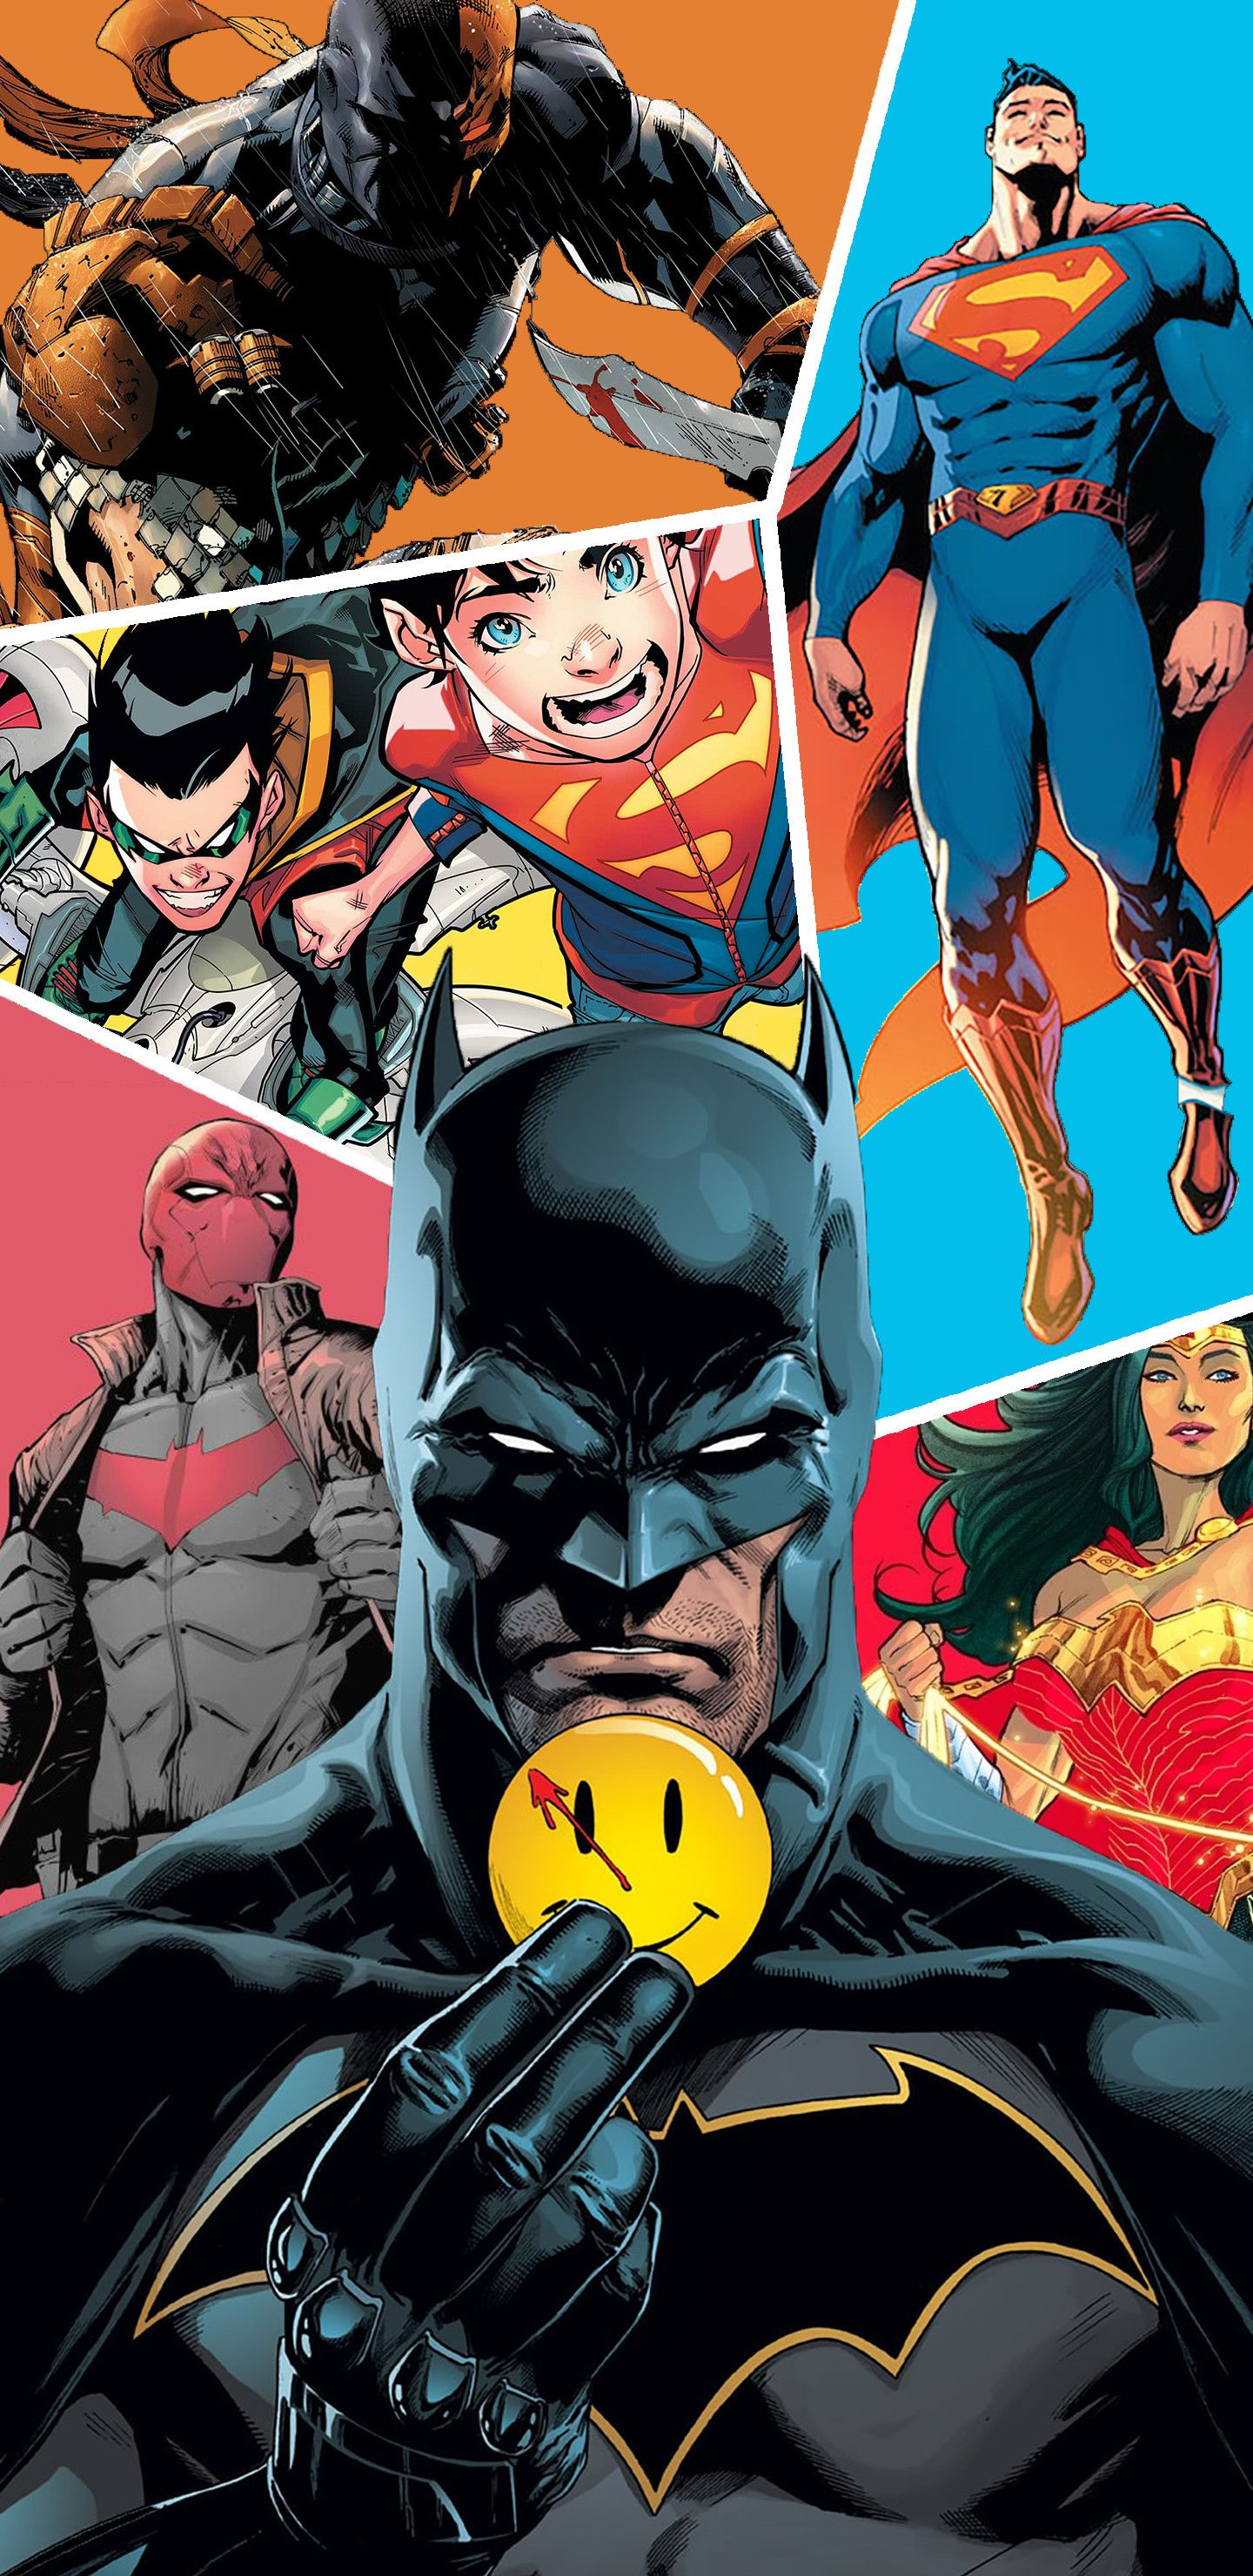 Justice League Cartoon Wallpapers - Top Free Justice ...